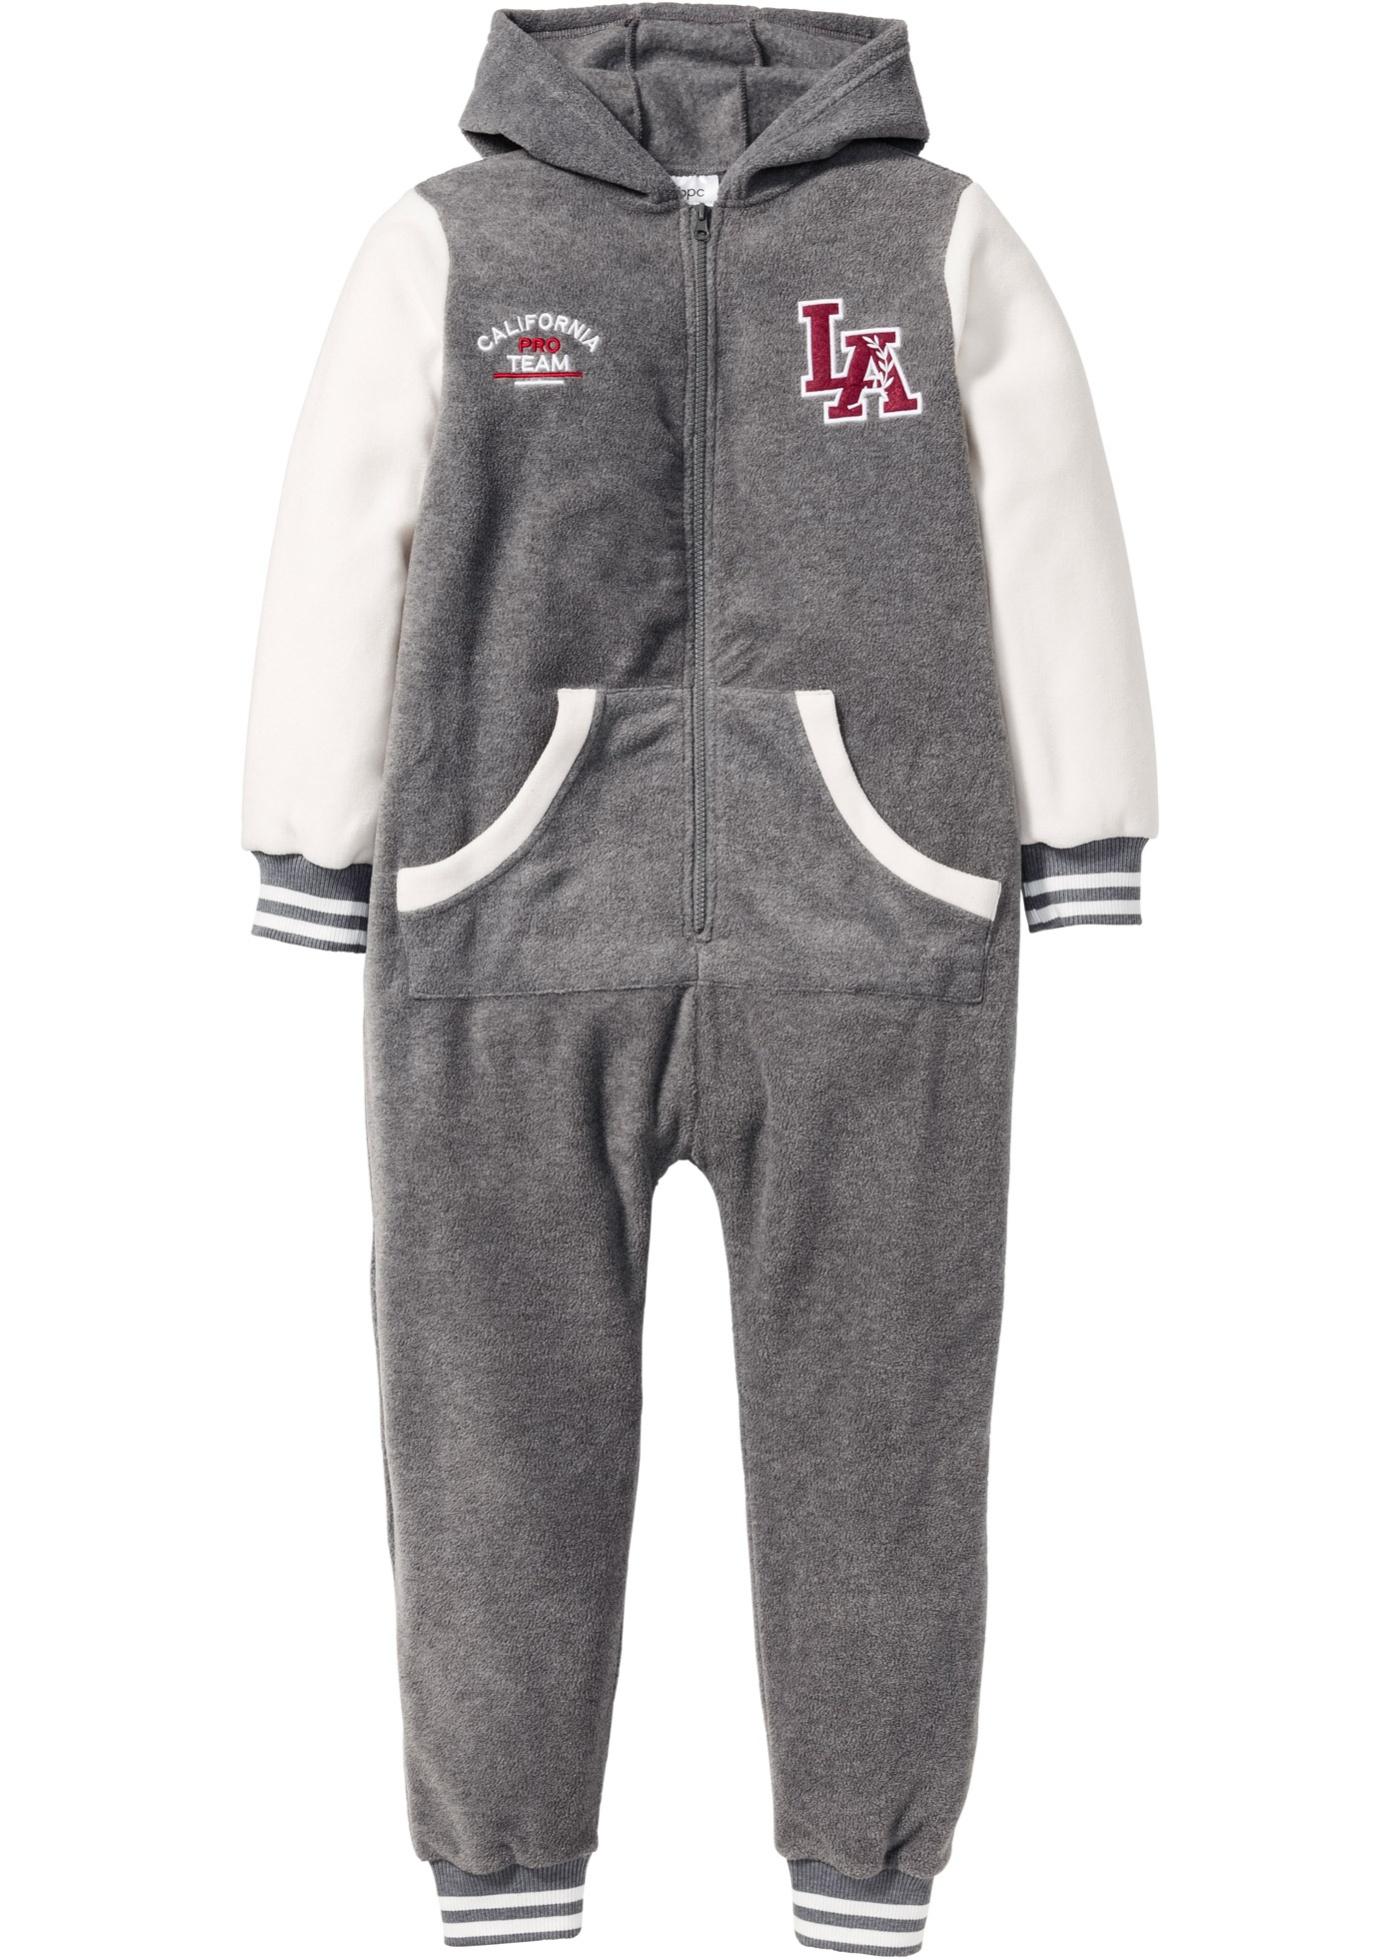 bpc bonprix collection Kuscheliger Fleece Overall, Gr. 116-170 langarm  in grau von bonprix